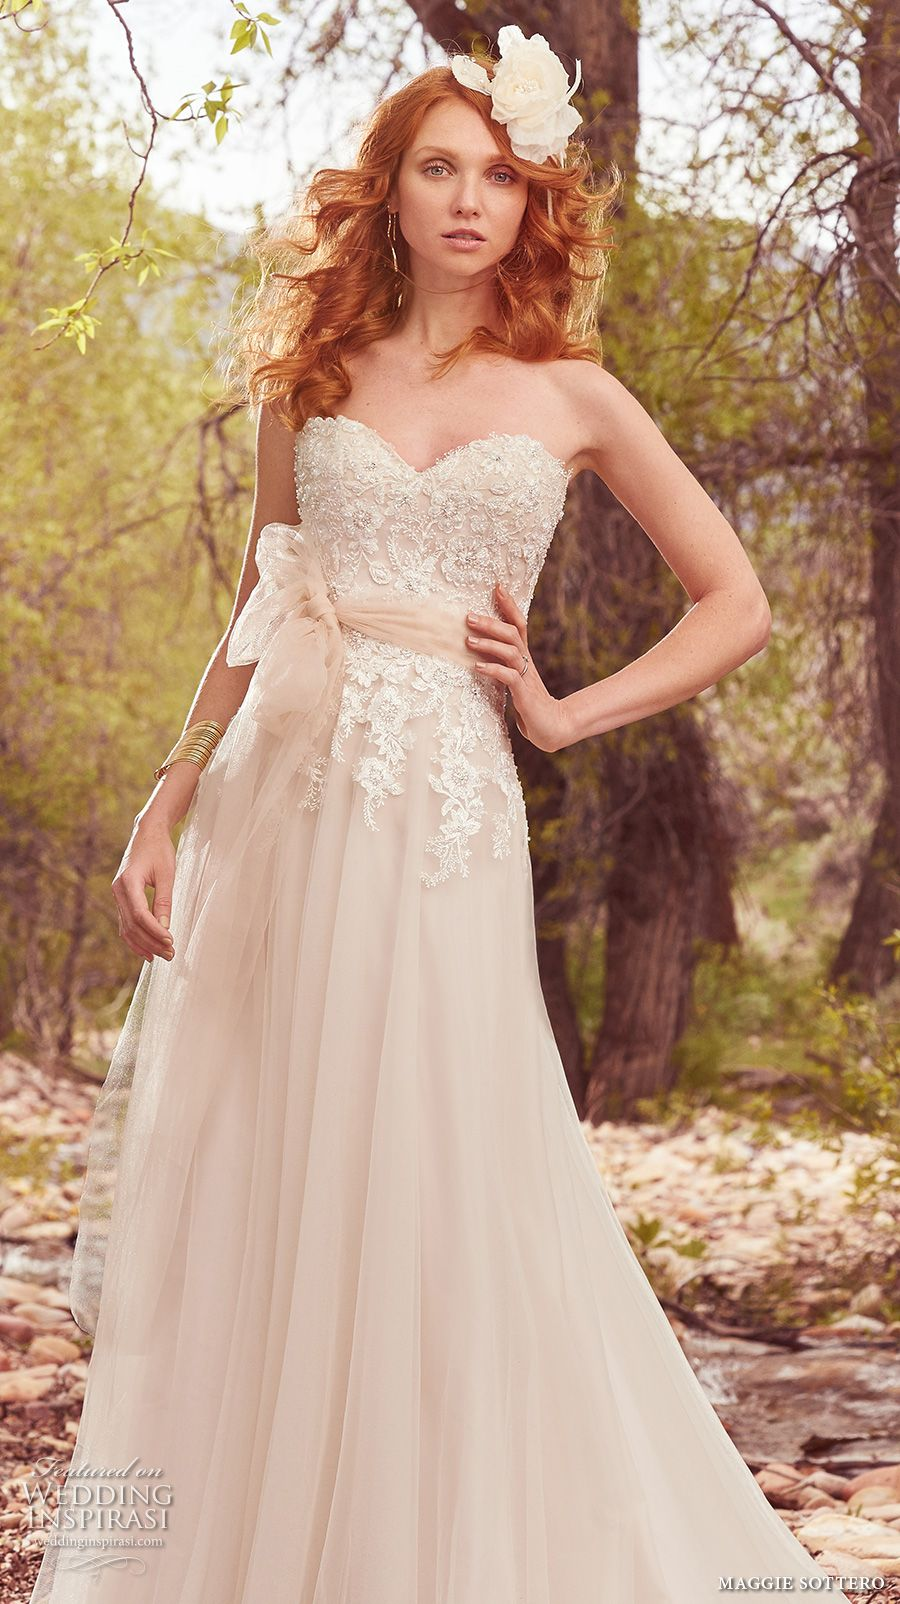 Maggie Sottero Spring 2017 Bridal Strapless Sweetheart Neckline Heavily Embellished Bodice Romantic Modified A Line Wedding Dress Chapel Train Harmony Mv: Maggie Sottero Harmony Wedding Dress At Reisefeber.org